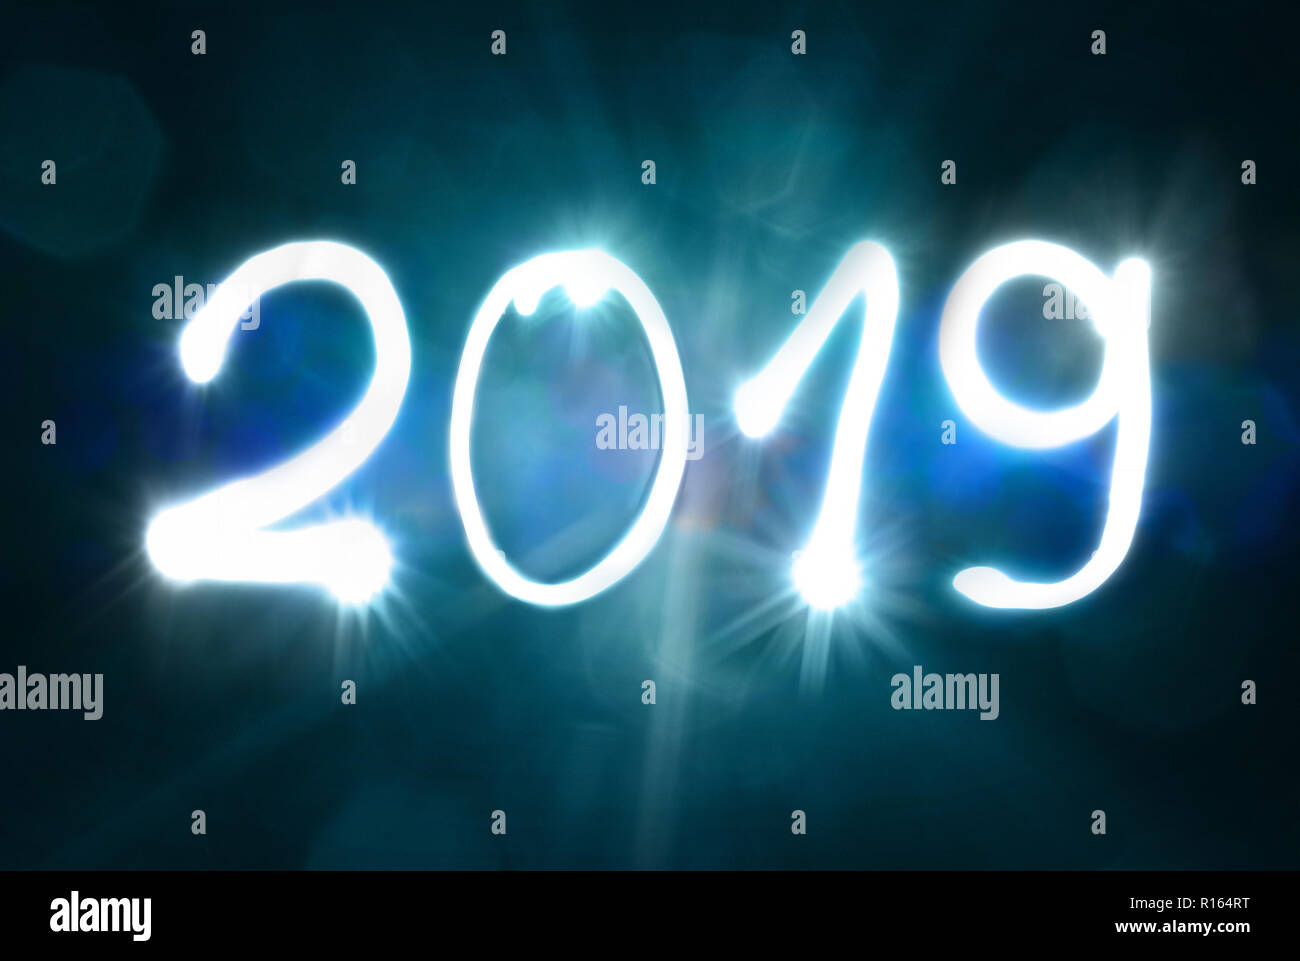 2019 new years eve two thousand nineteen exposure - Stock Image